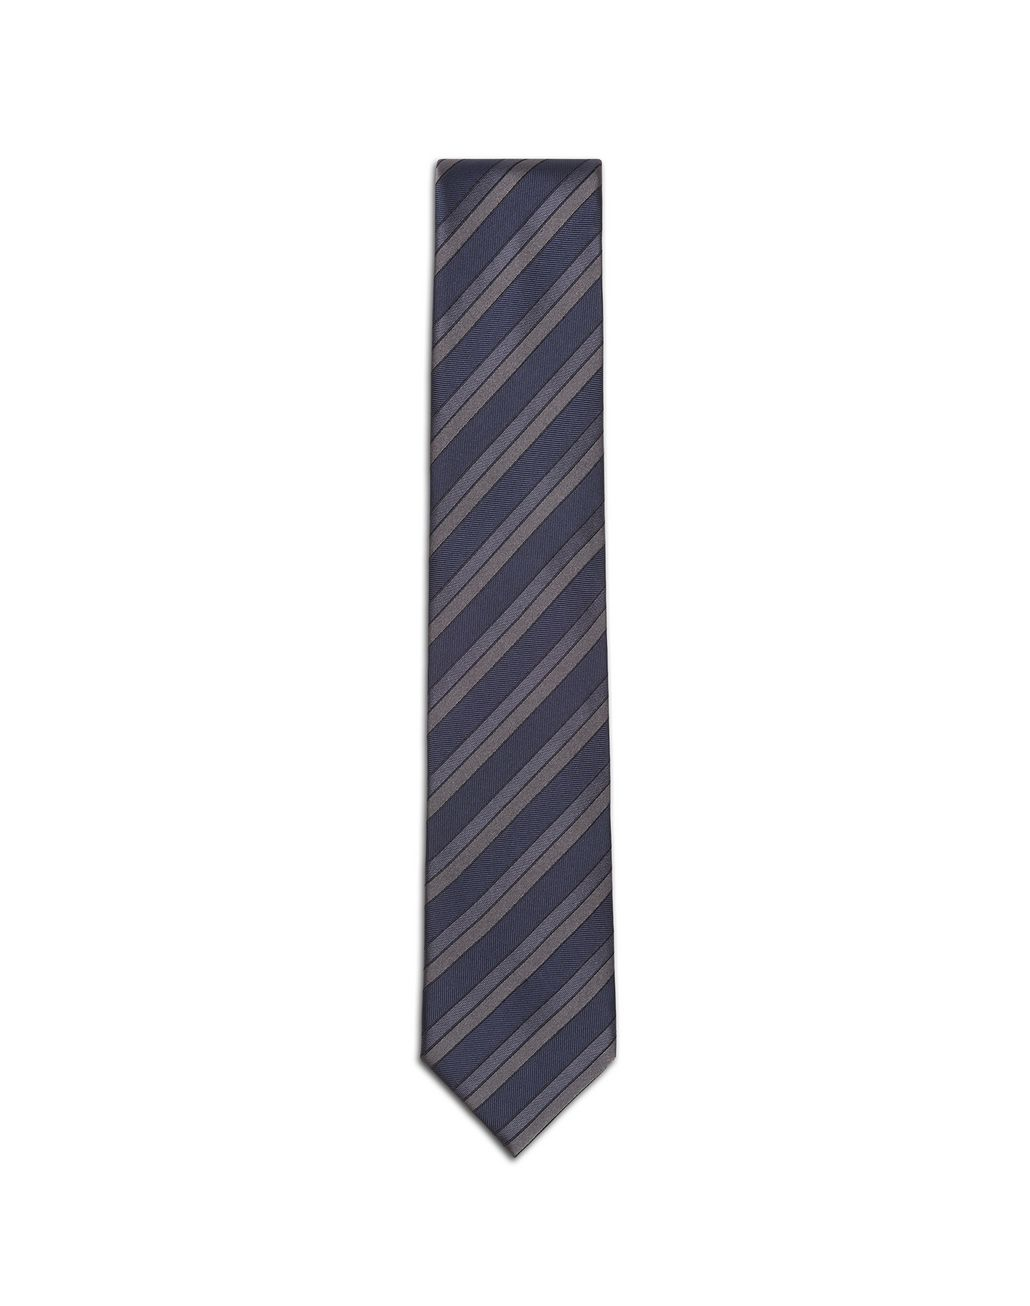 BRIONI Gray and Navy Blue Regimental Tie Tie & Pocket Square U f